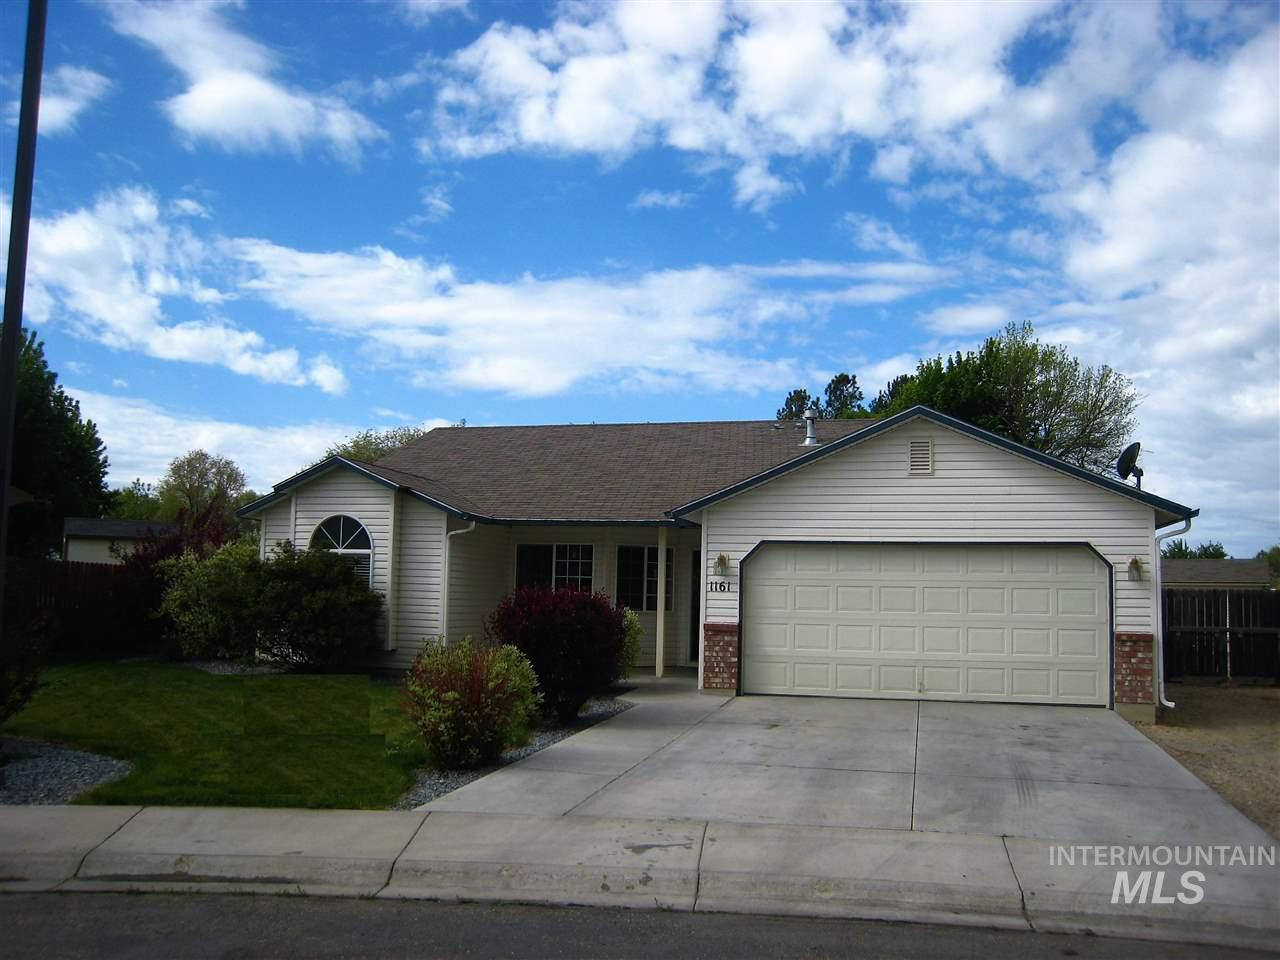 1161 S Winthrop Way, Boise, Idaho 83709, 4 Bedrooms, 2 Bathrooms, Rental For Rent, Price $1,785, 98762029